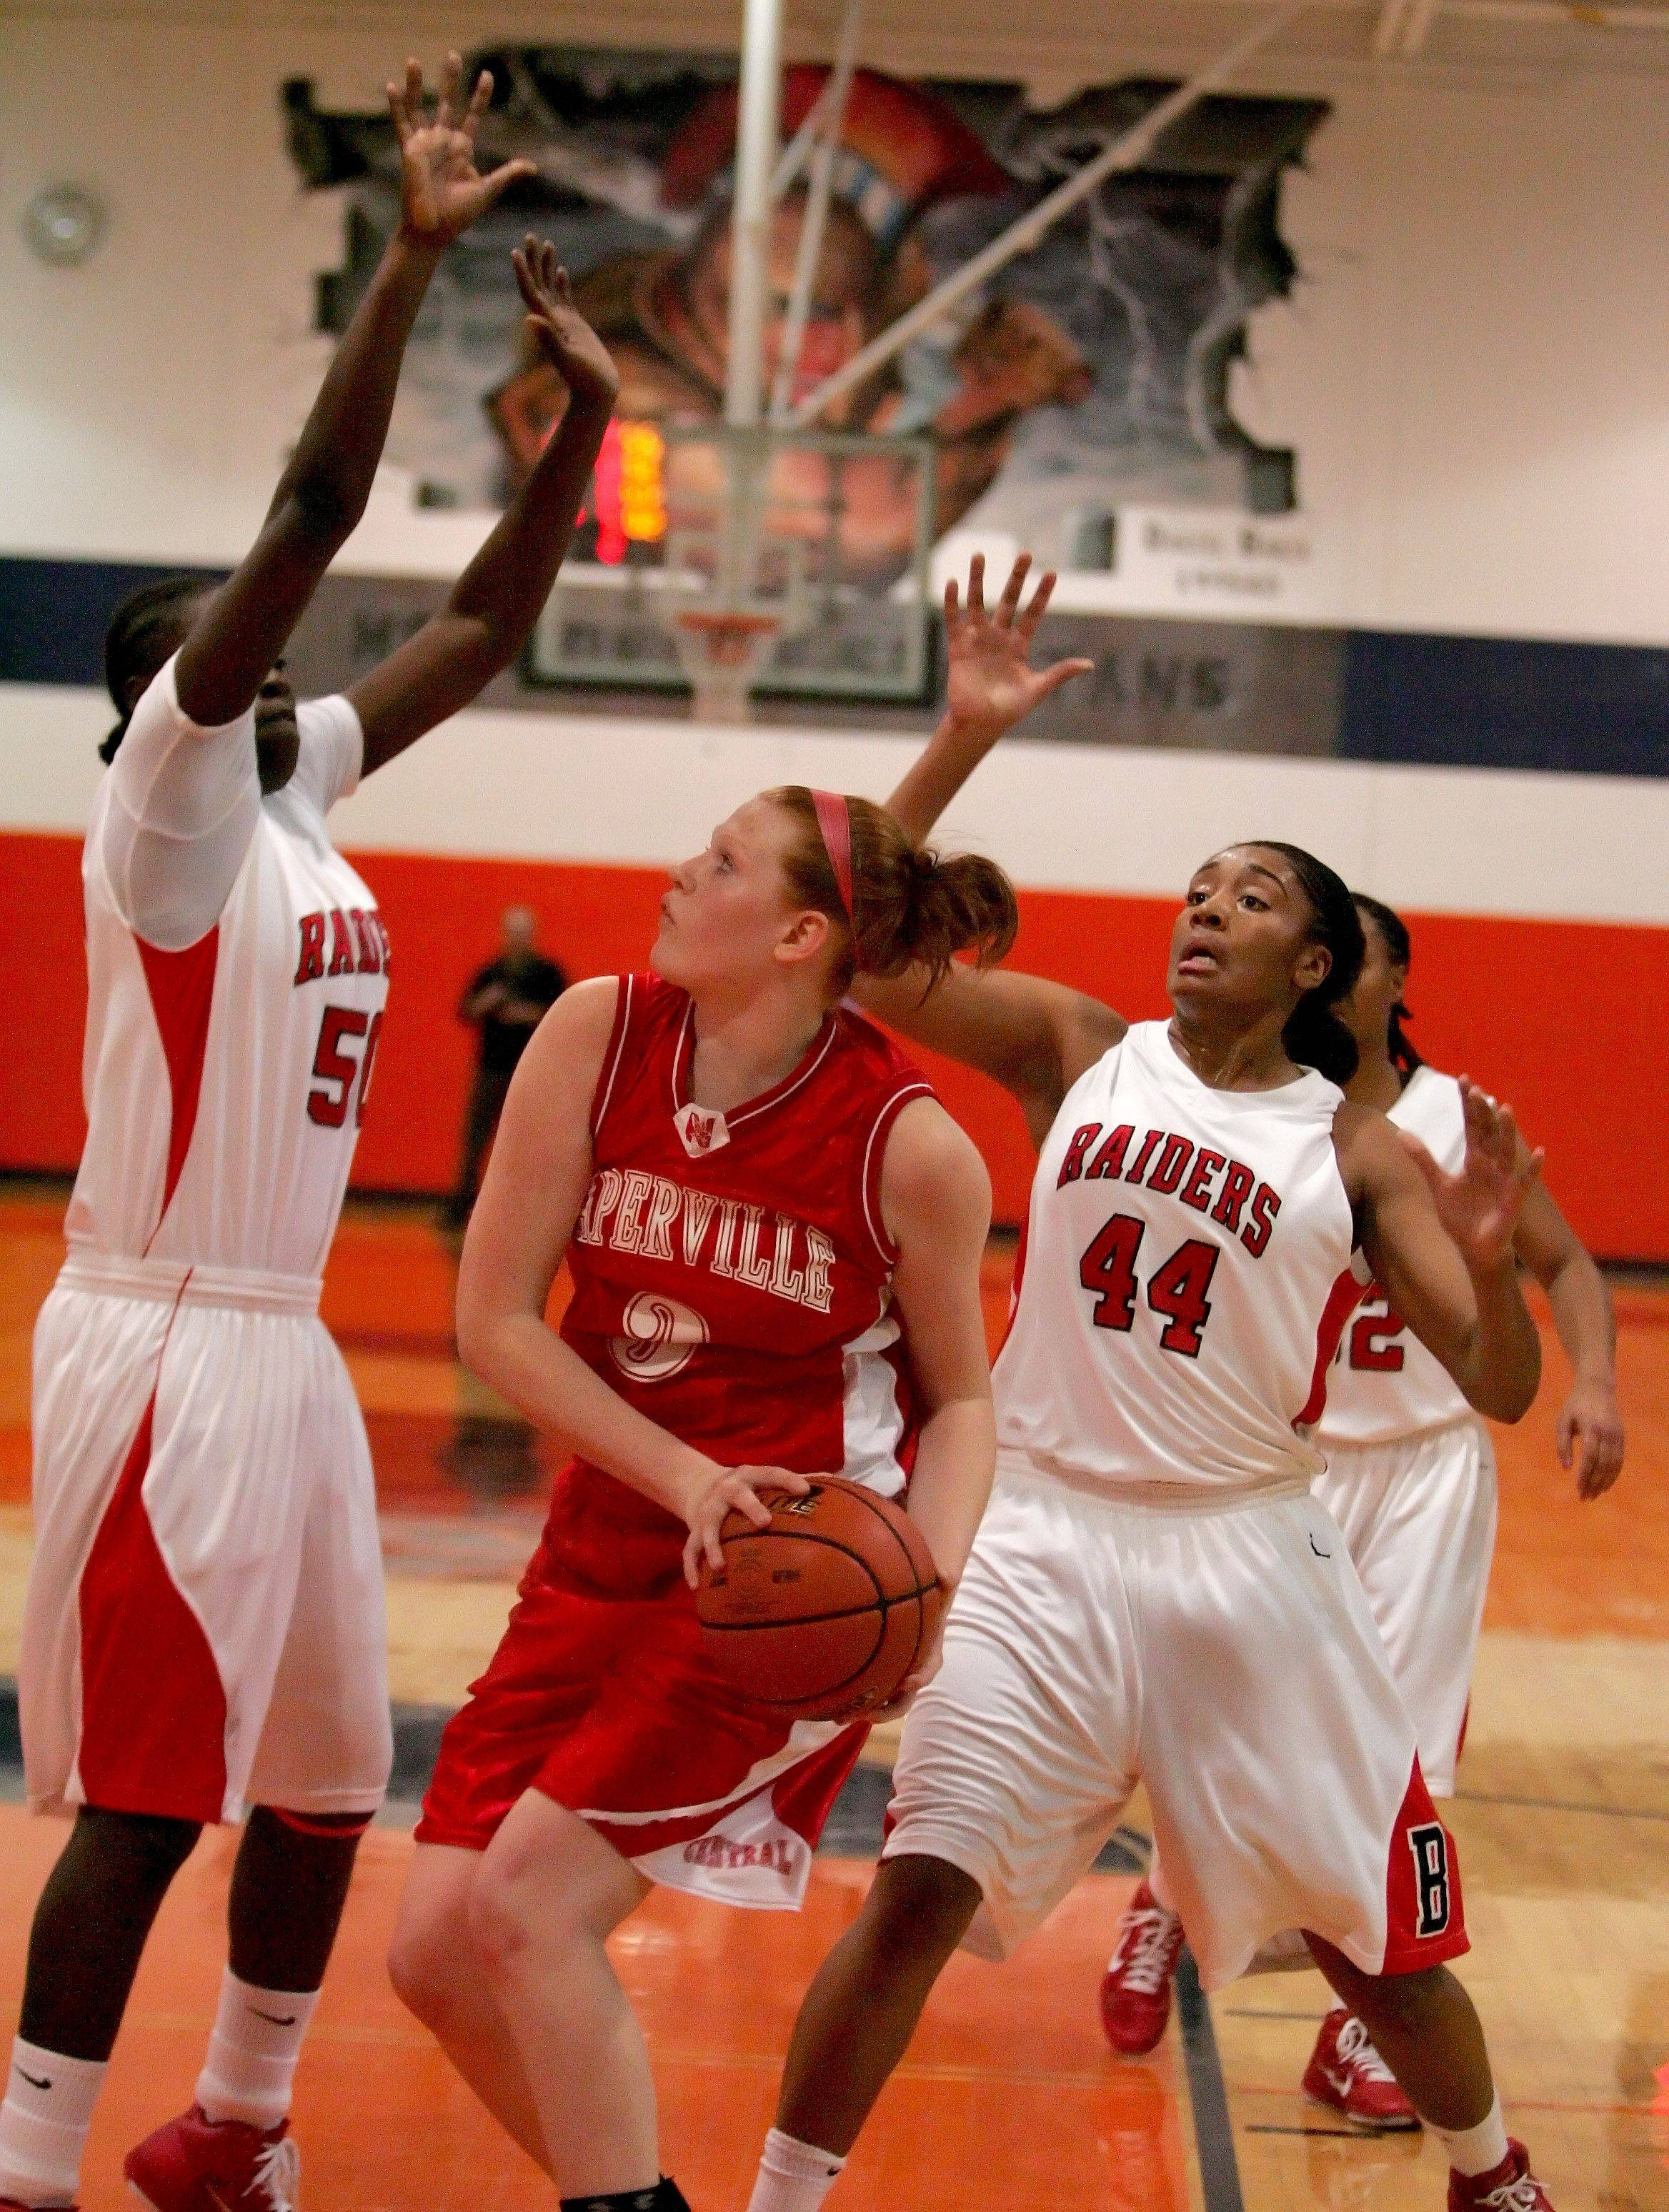 Images: Naperville Central vs. Bolingbrook girls basketball